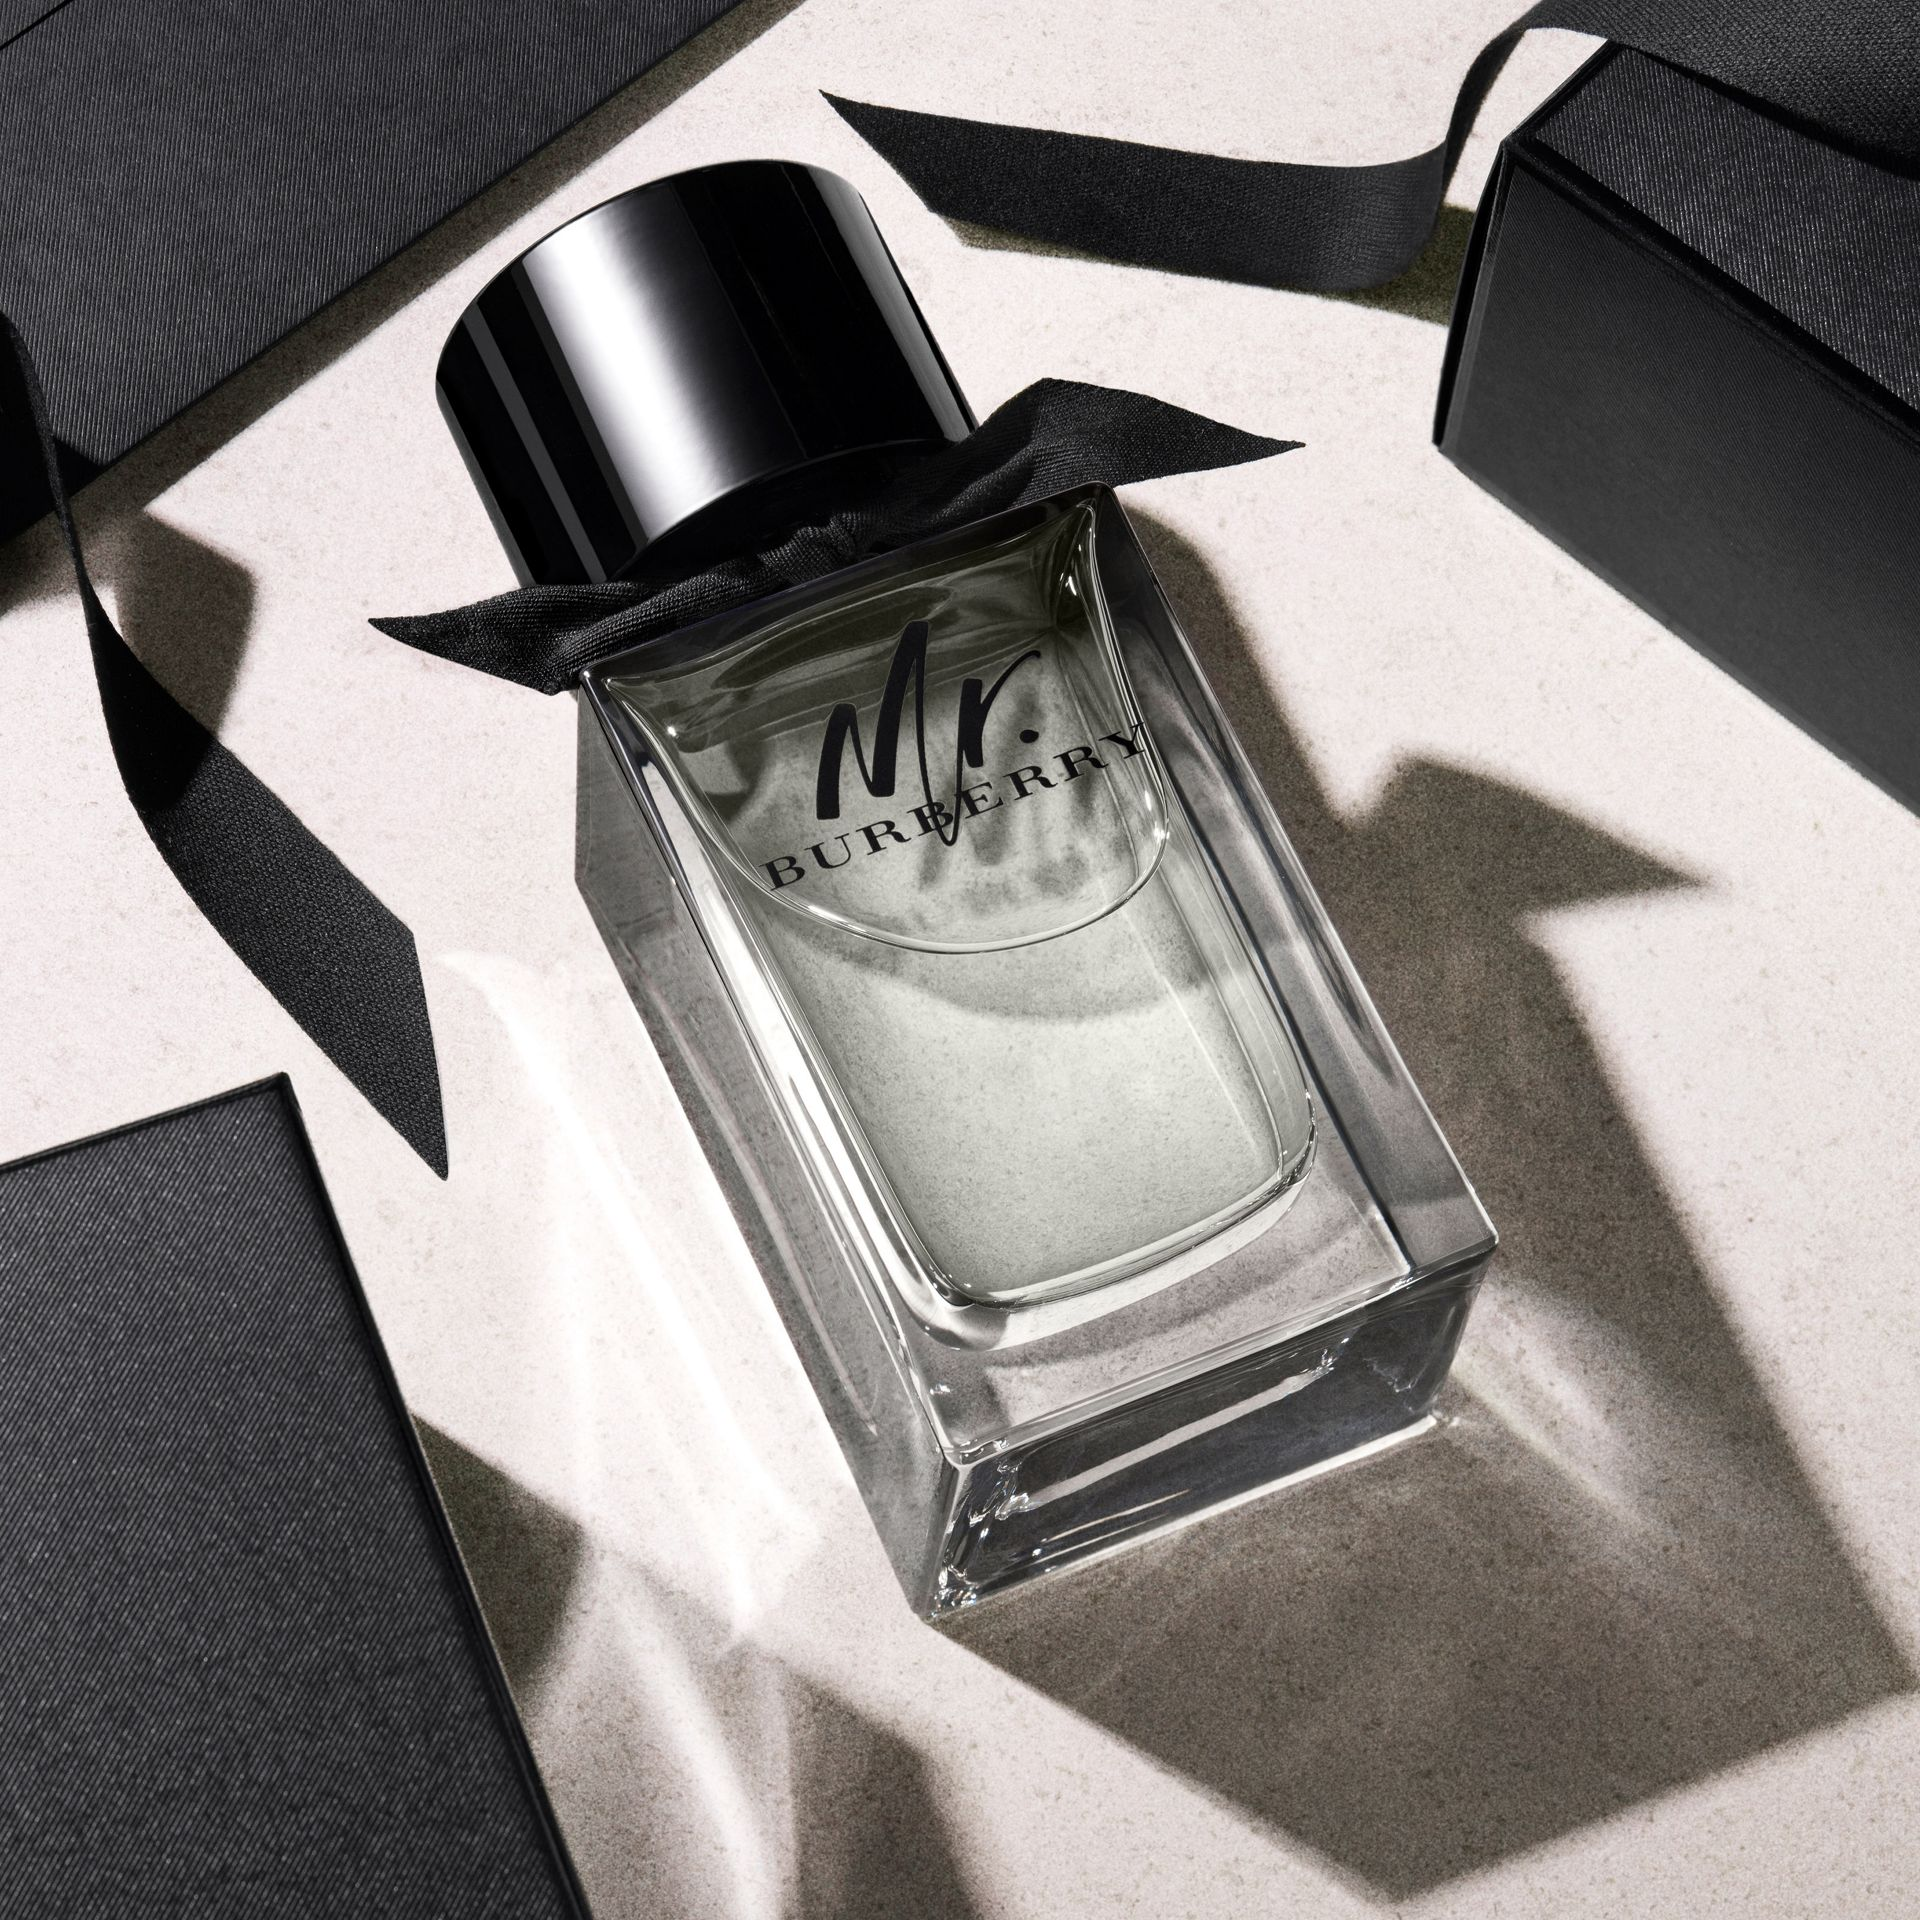 Mr. Burberry Eau de Toilette 50 ml - Galerie-Bild 3